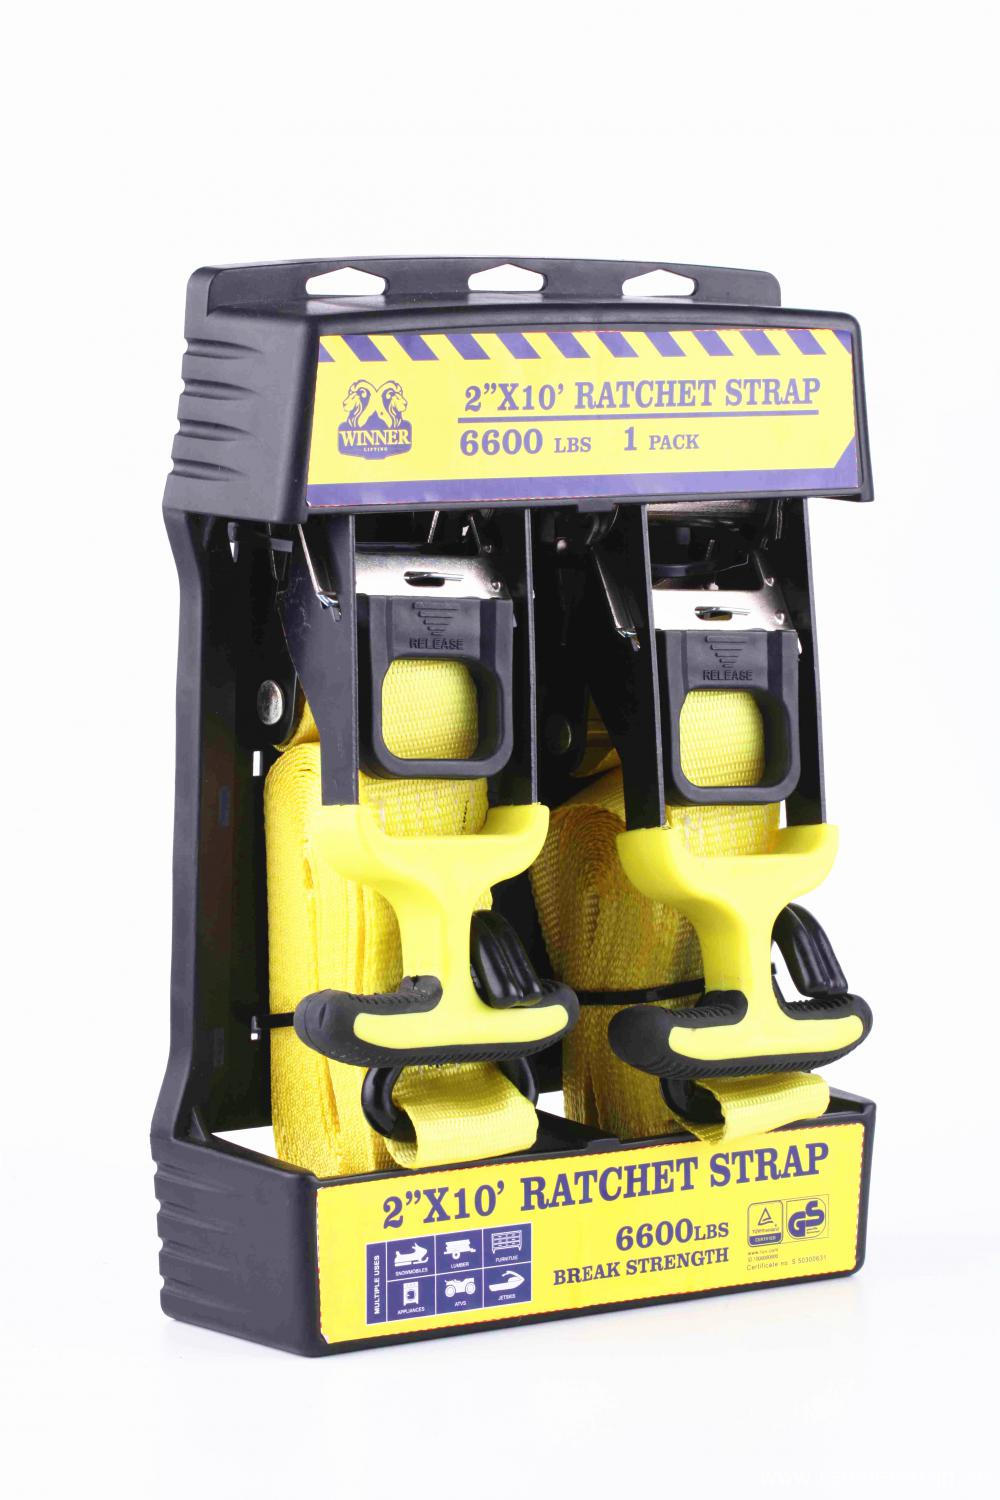 Packaged Soft Rubber Handle Ratchet Tie Down Strap with 3000KGS